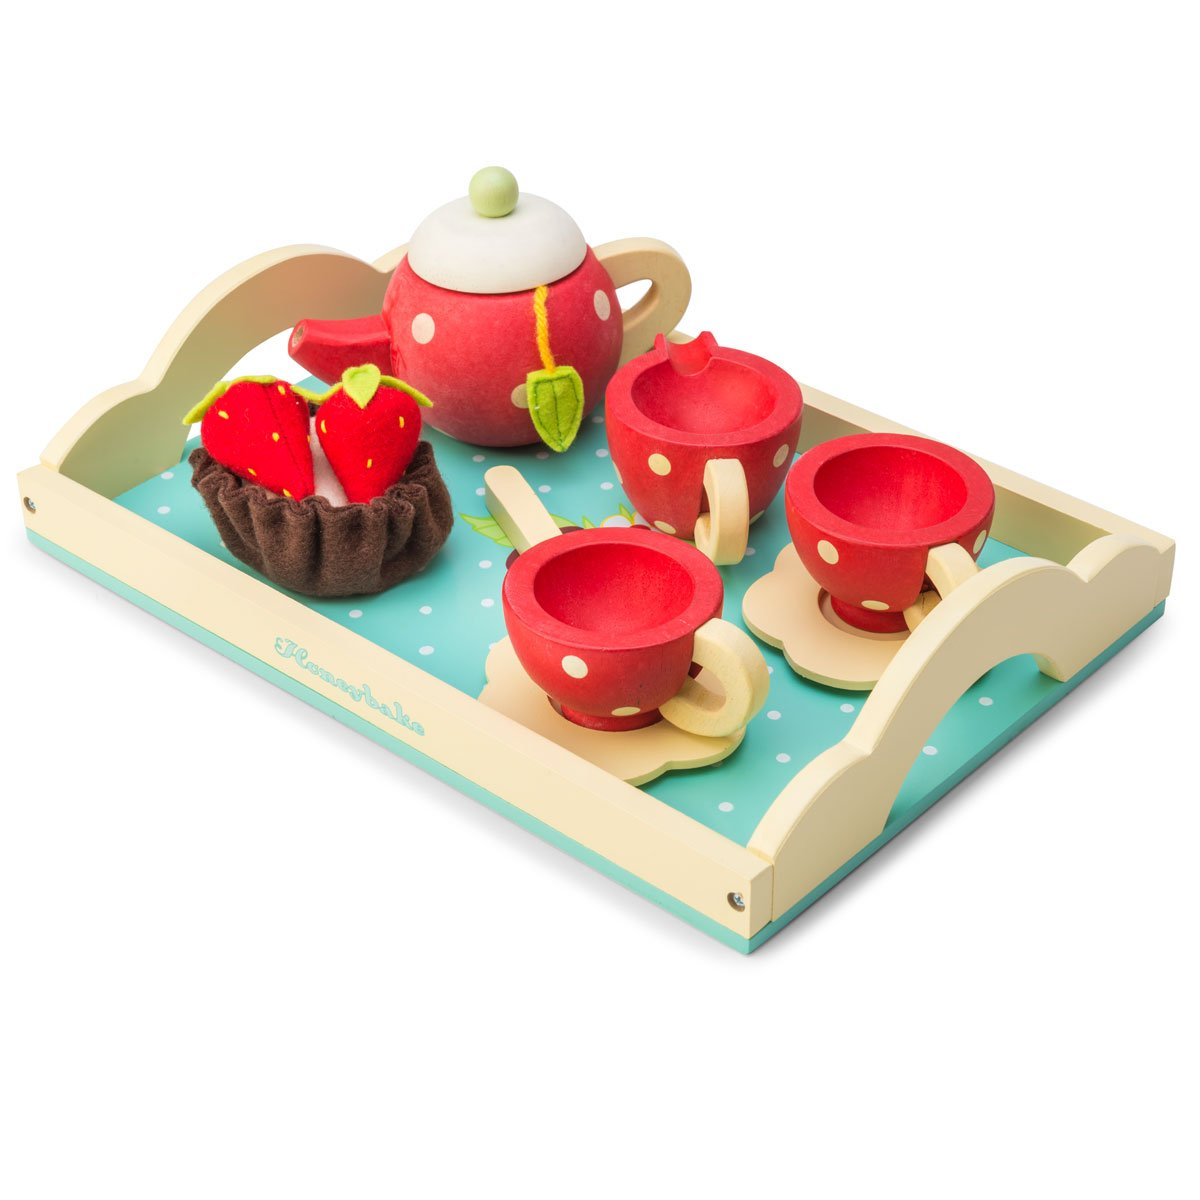 Le Toy Van Honeybee Tea Set Le Toy Van Pretend Play at Little Earth Nest Eco Shop